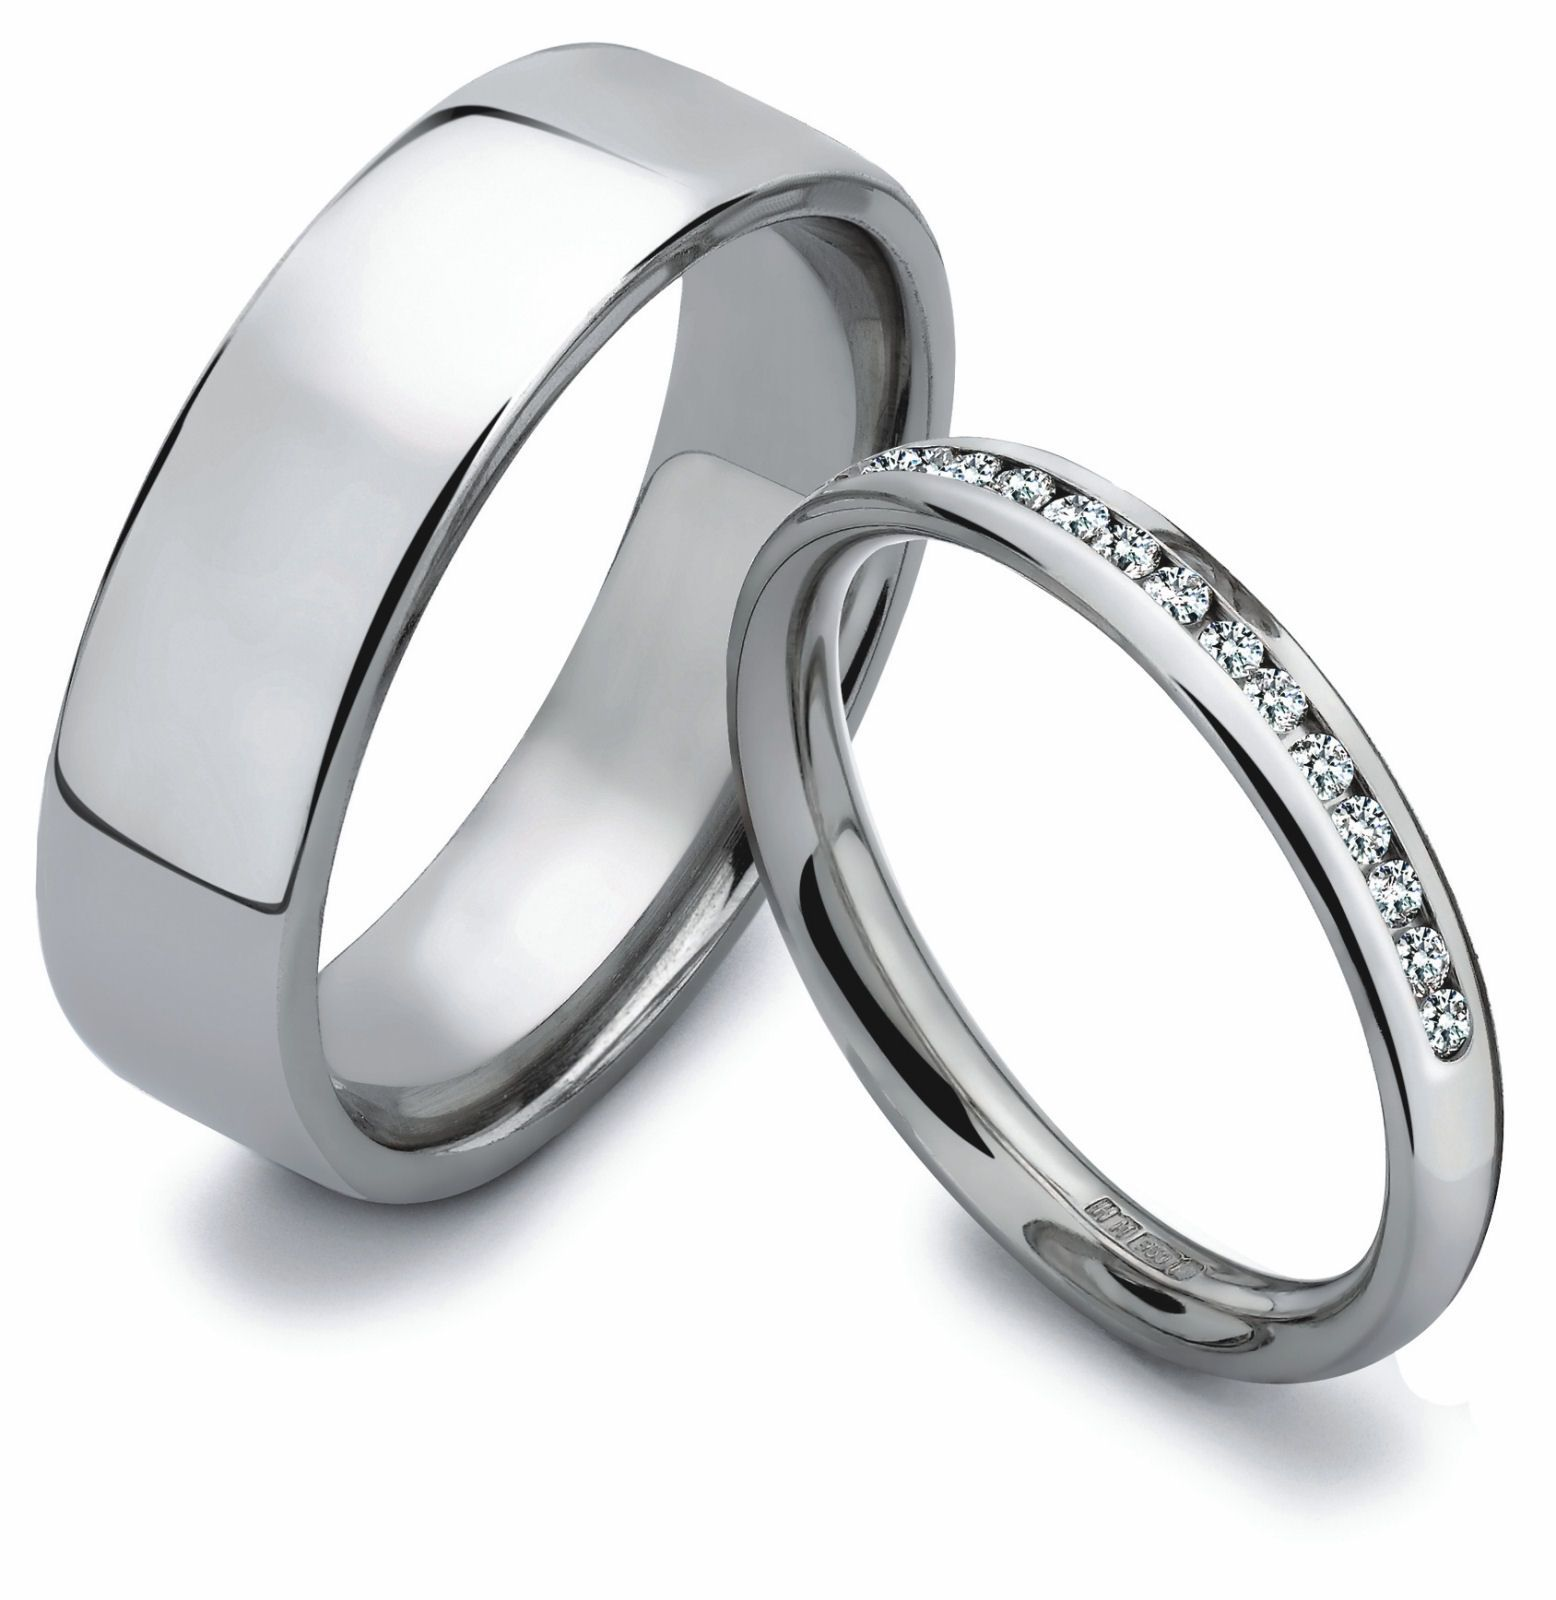 ring south wedding him jewellery uk large of rings sets her for size proposal and bands africa